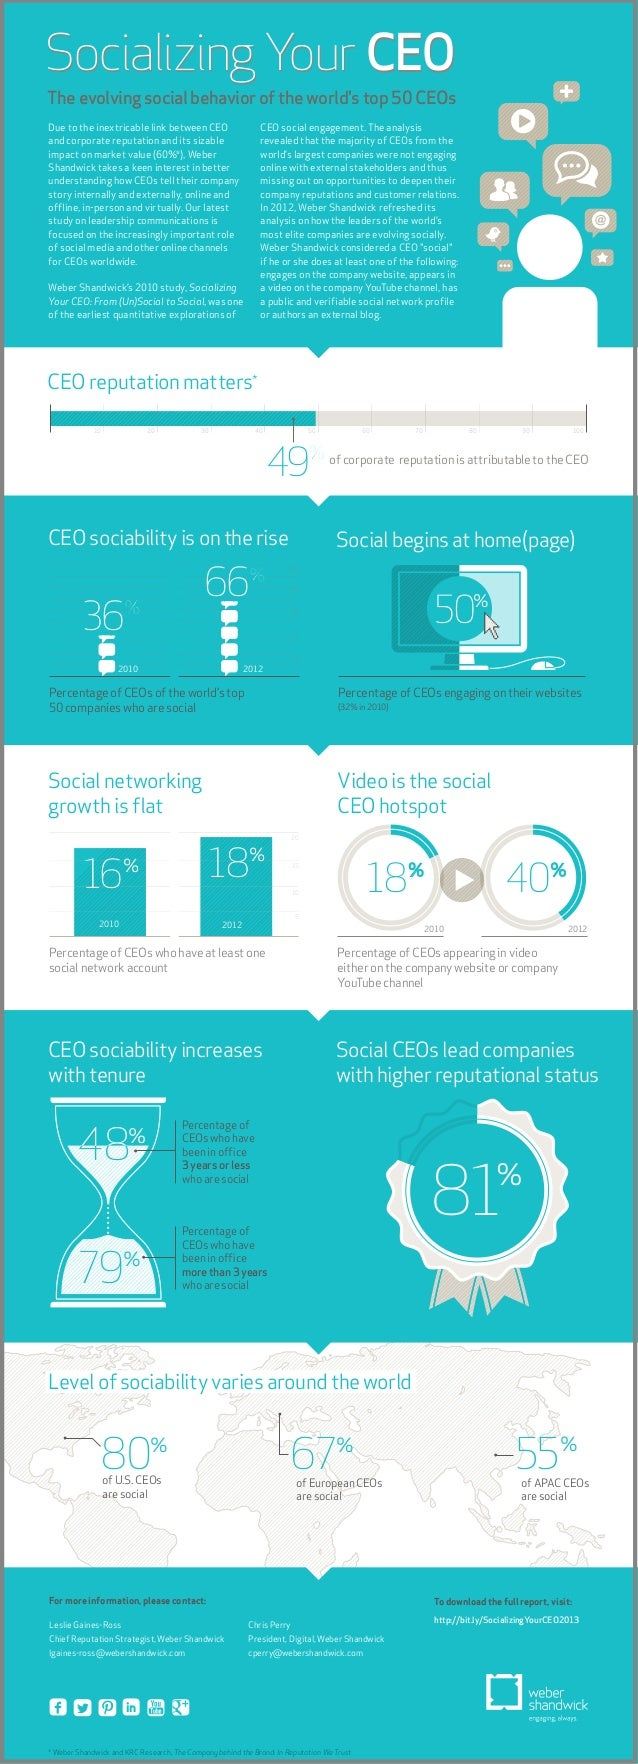 Socializing Your CEOThe evolving social behavior of the worlds top 50 CEOs                                                ...